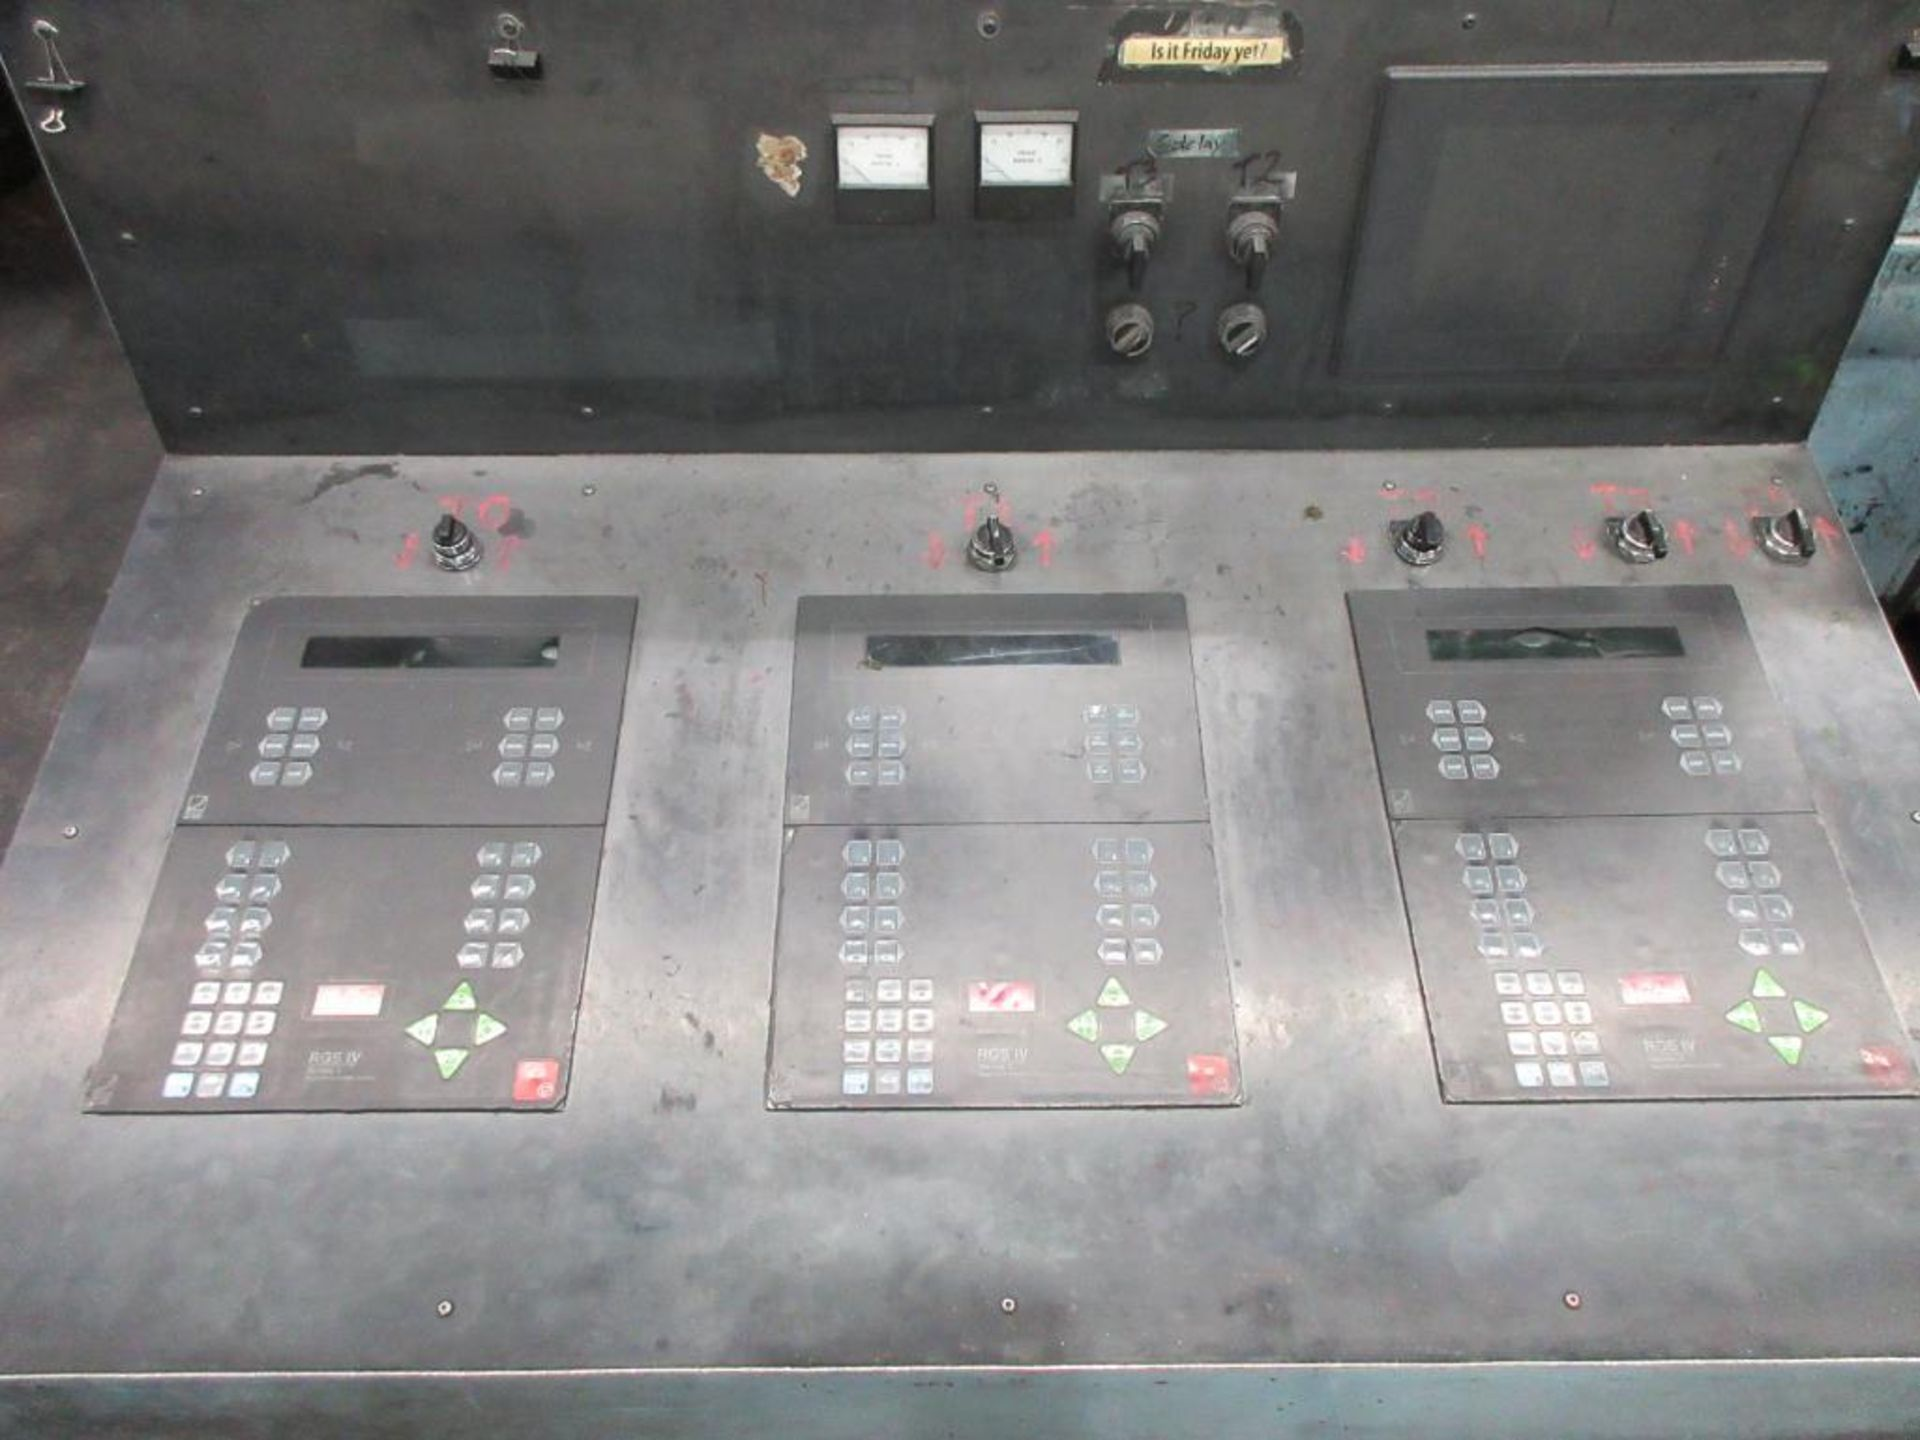 "Complete Goss/Ventura 22.75"" cut off 50 unit web offset press featuring: Ventura 30 4 high (0), Vent - Image 28 of 58"